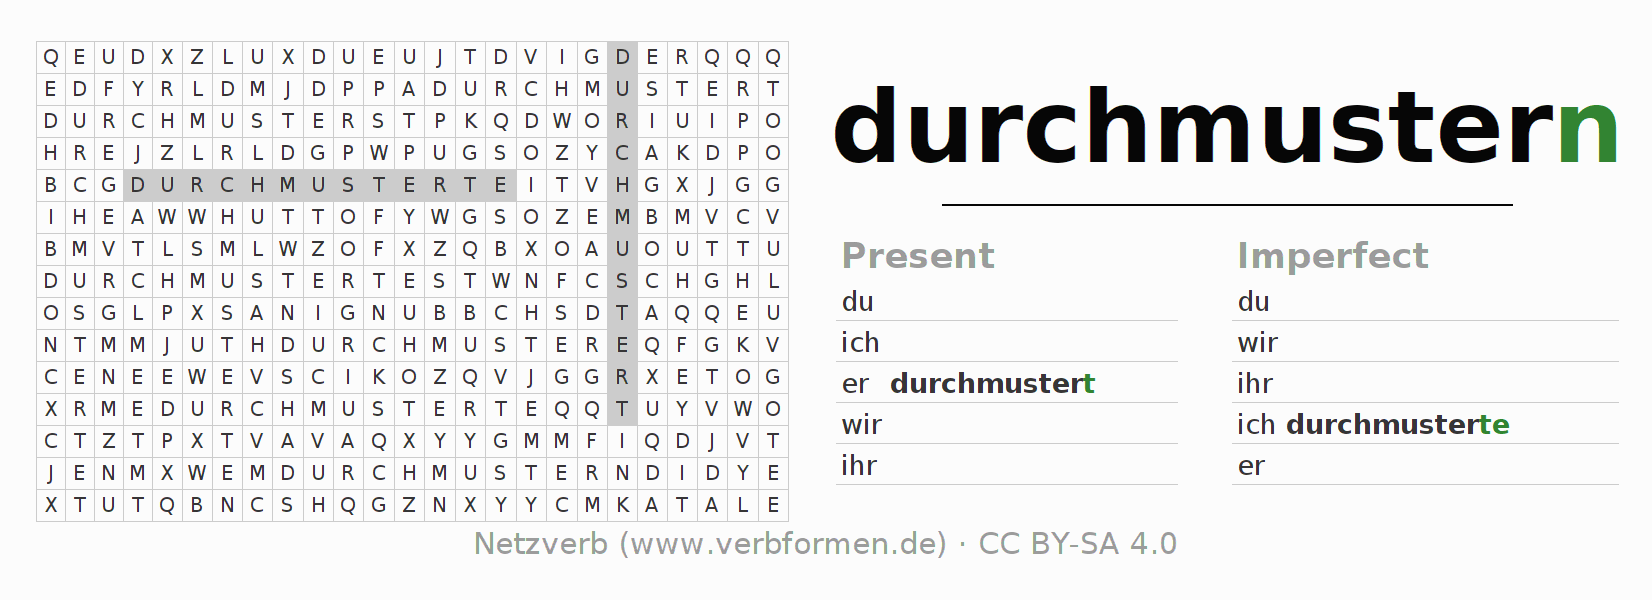 Word search puzzle for the conjugation of the verb durchmustern